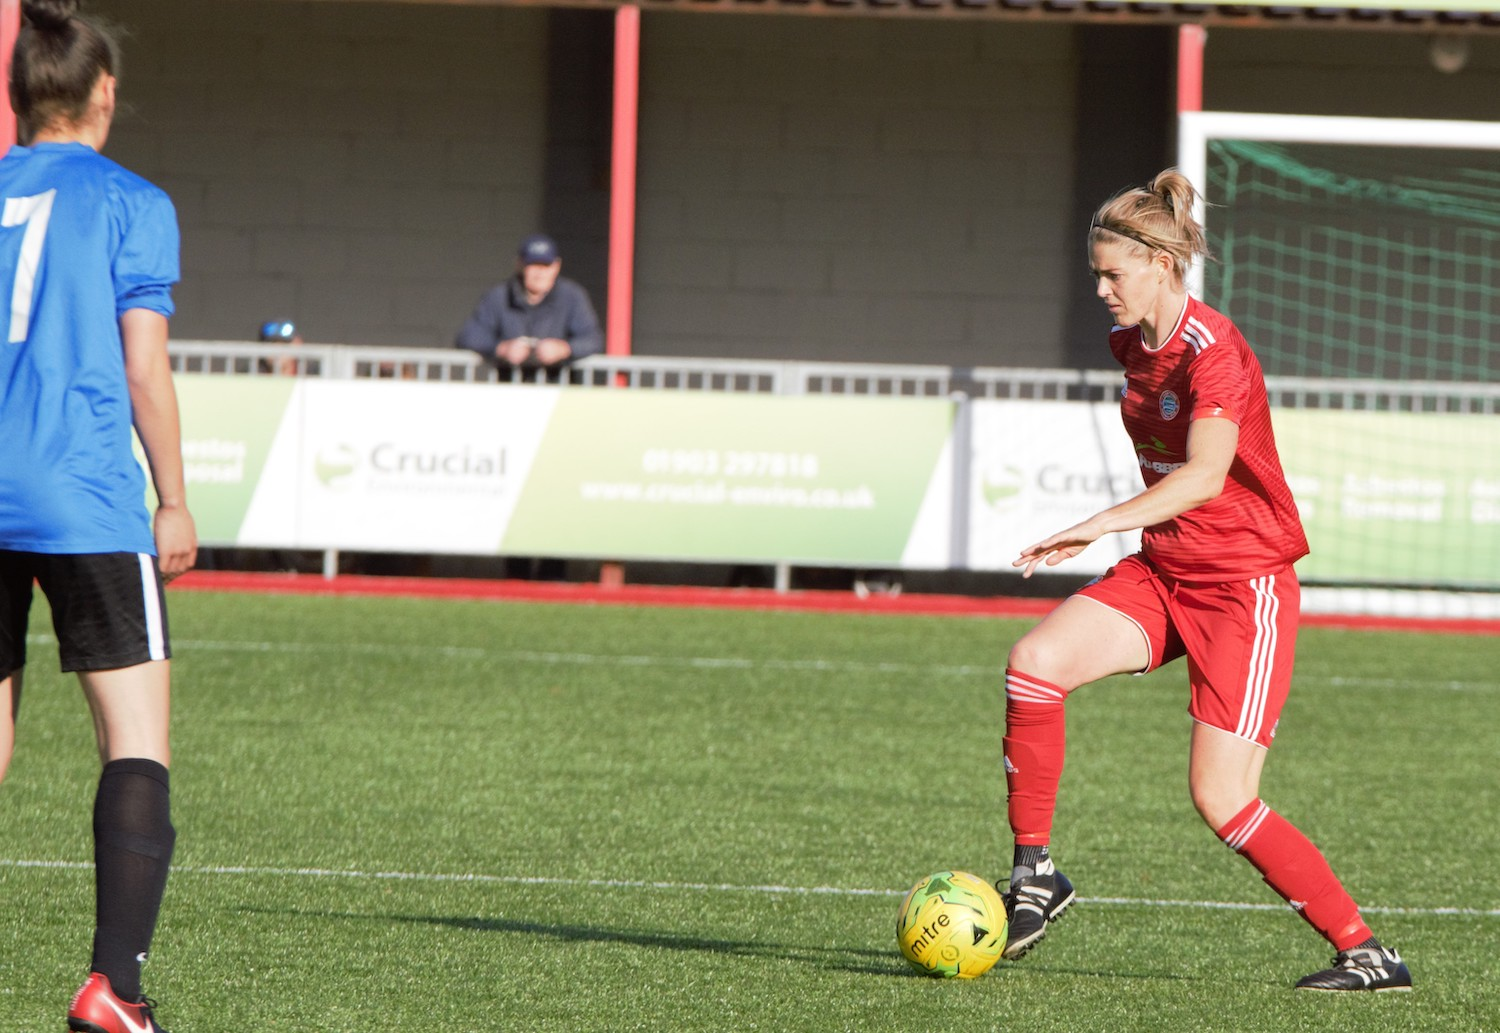 Read the full article - HIGHLIGHTS: Worthing 1-6 Leyton Orient [H] – Cup